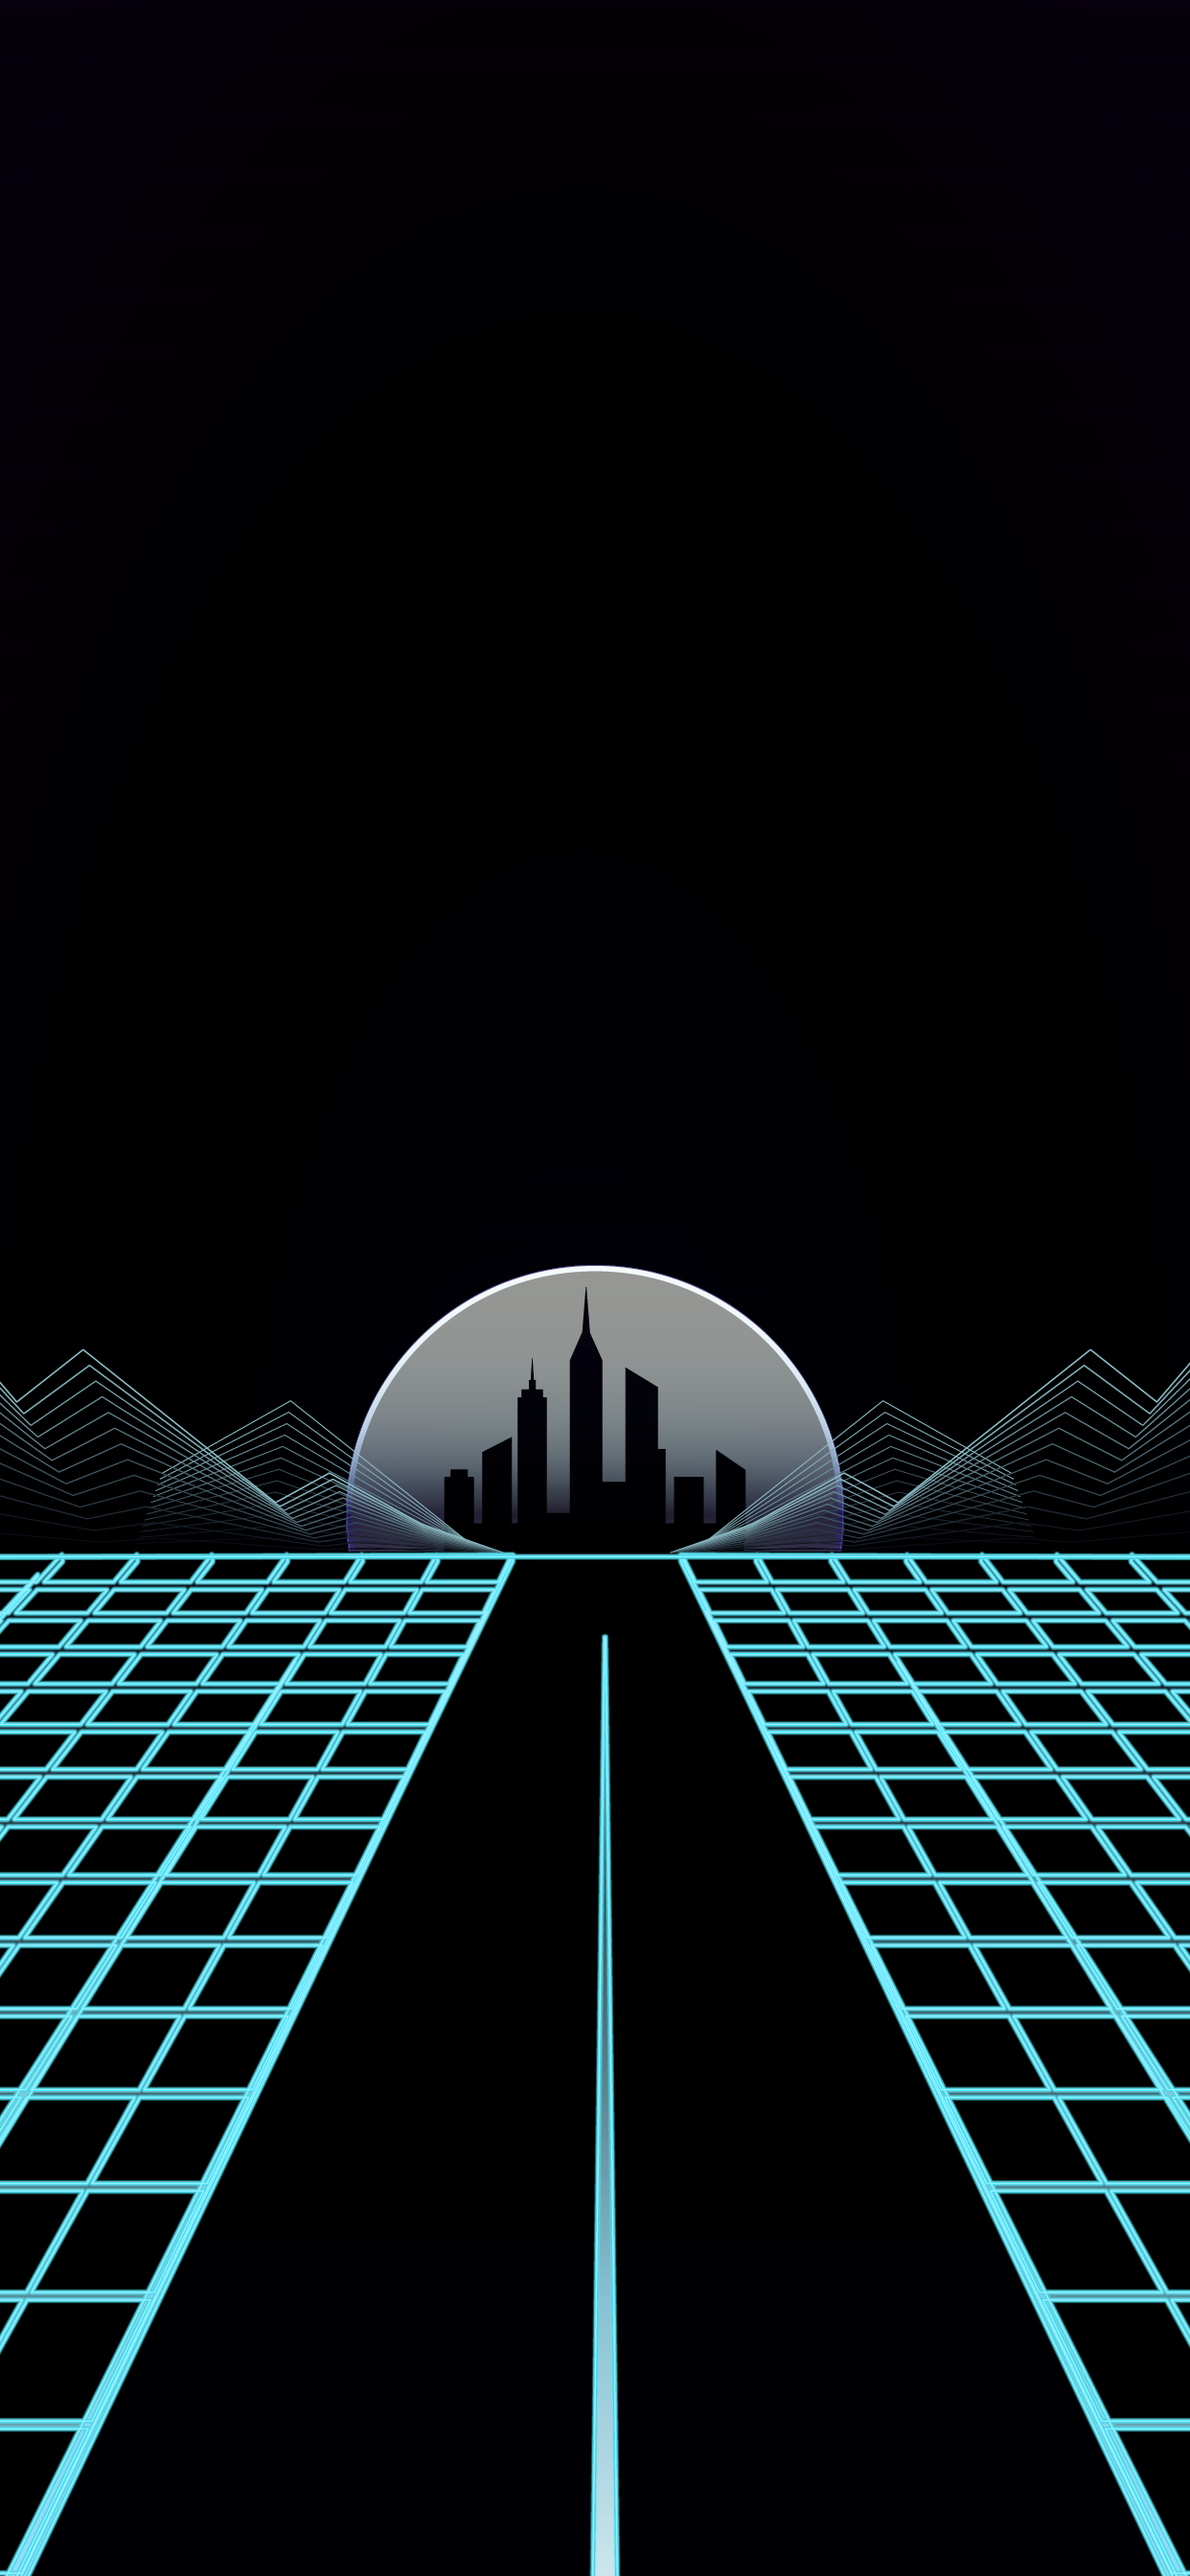 COOL RETRO WAVE OUTRUN WALLPAPER HD FOR MOBILE PHONE